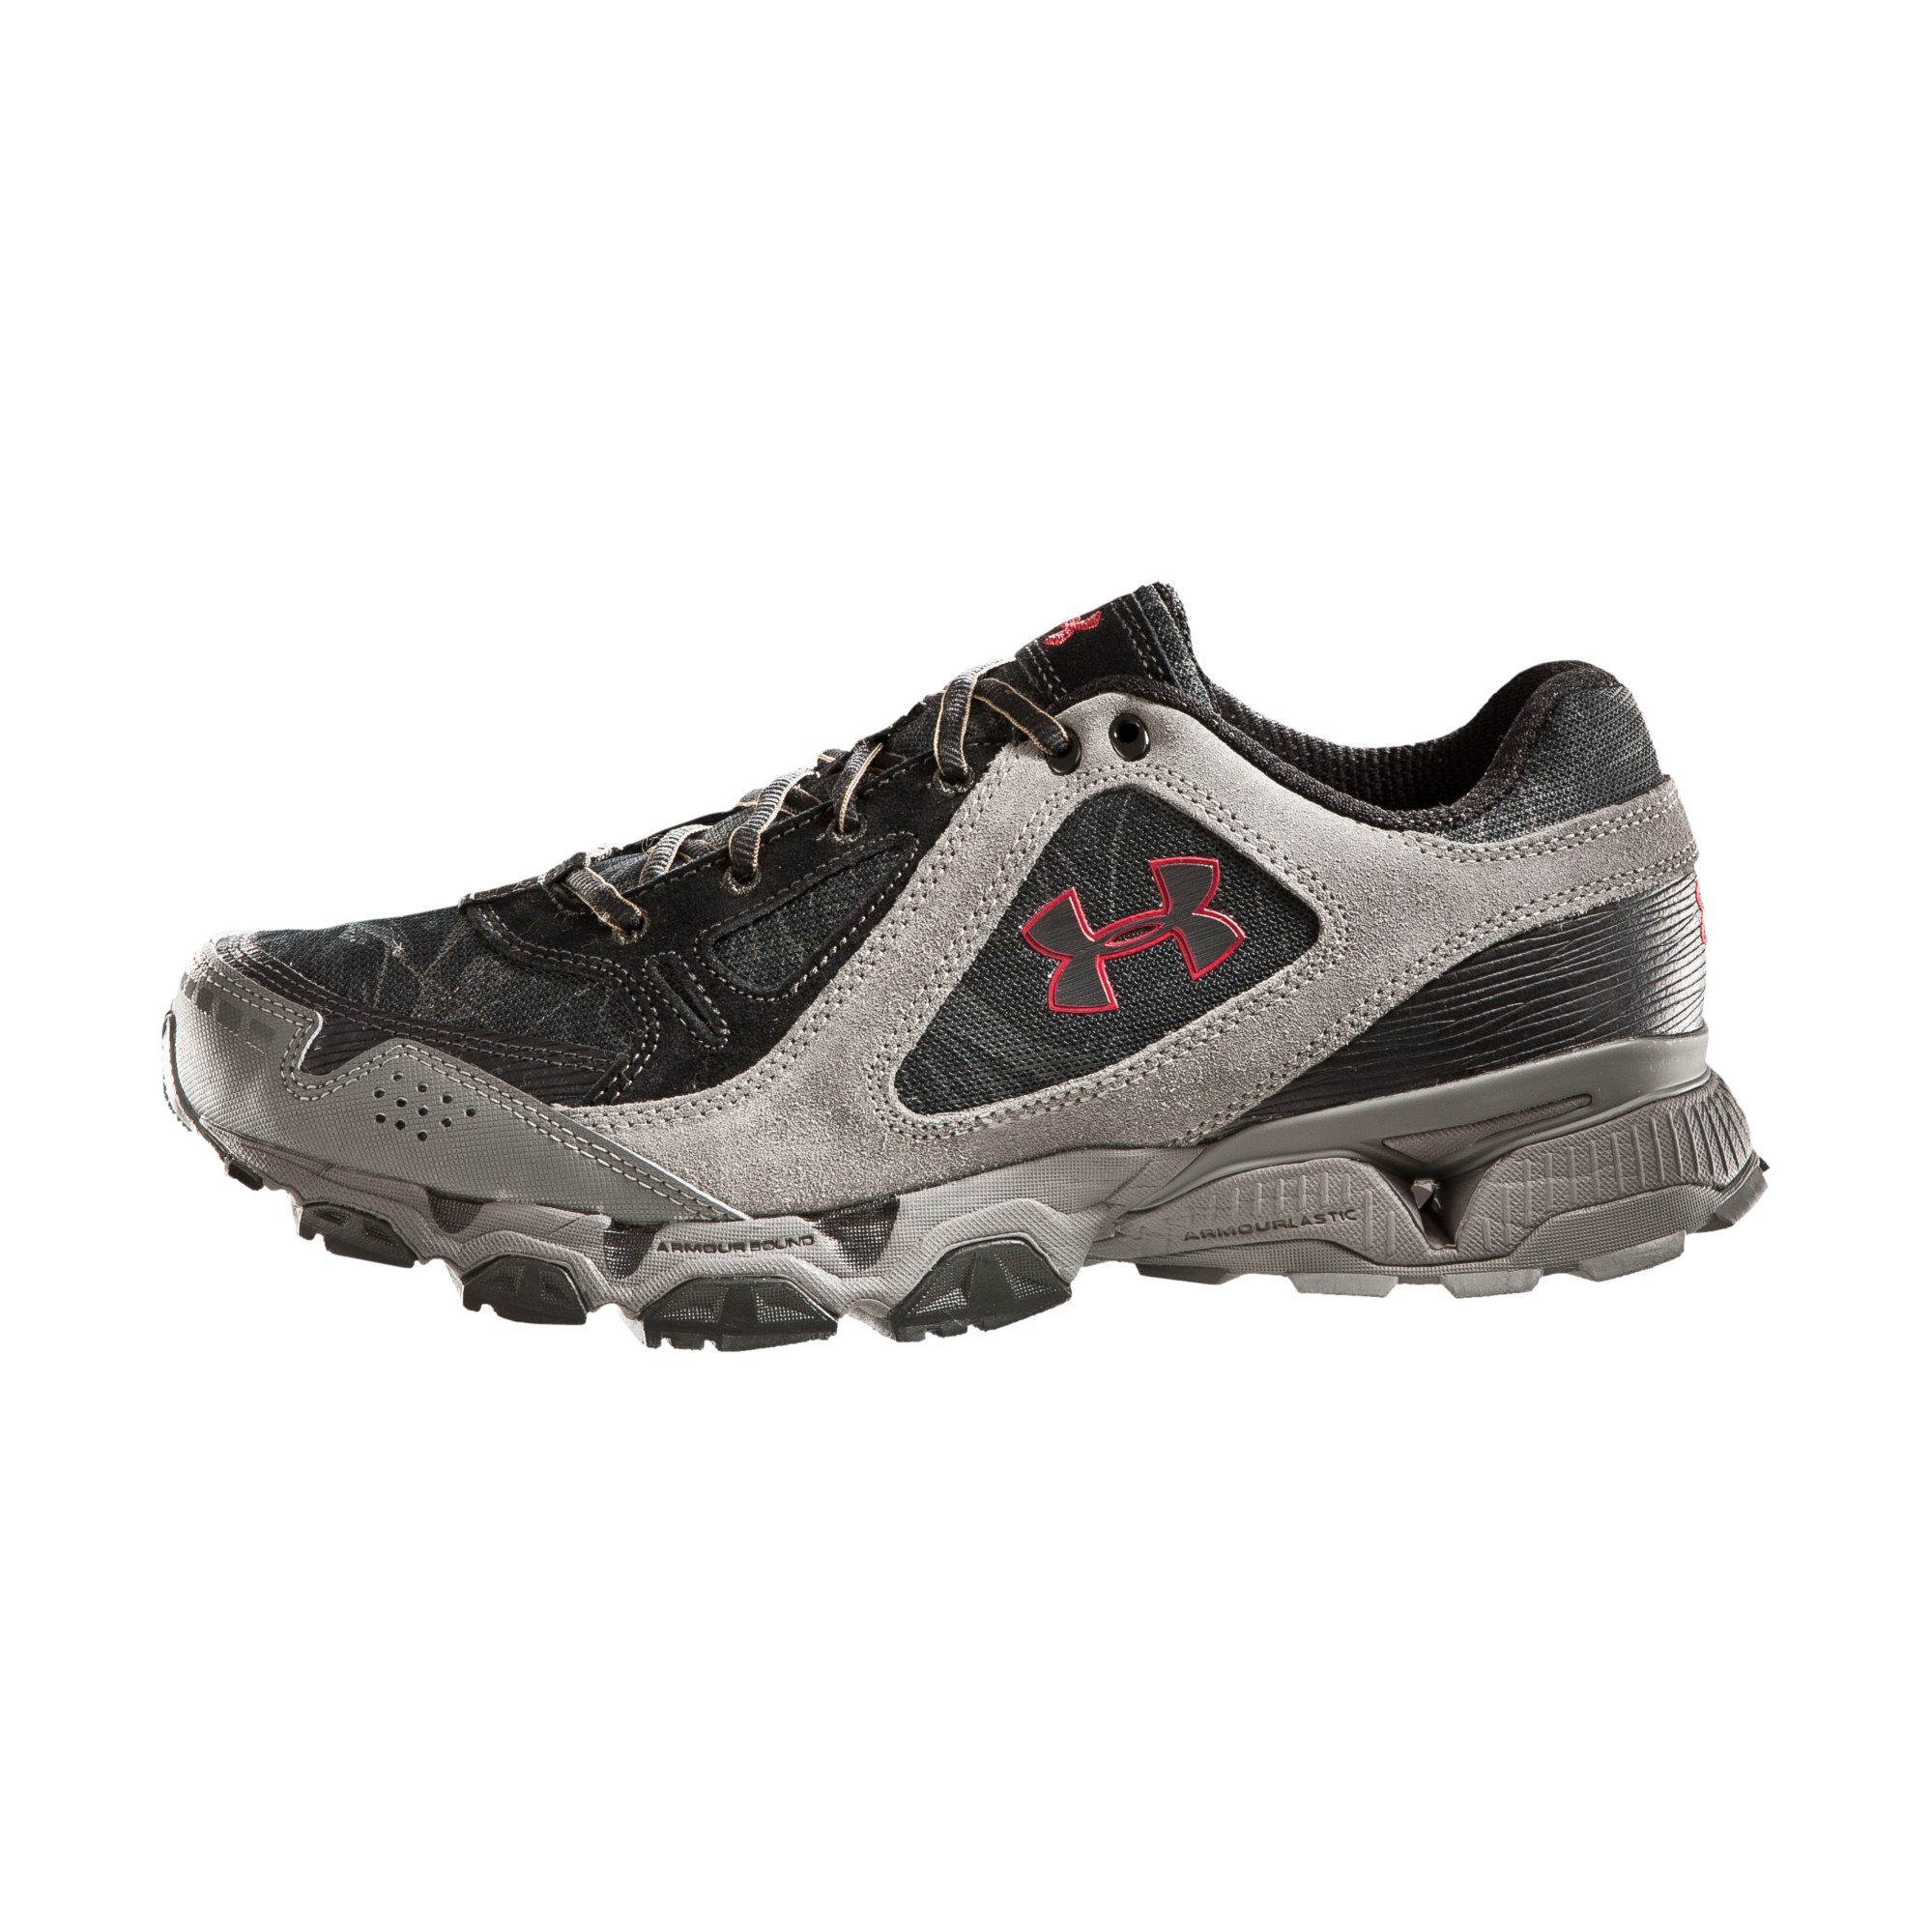 Under Armour Chetco Trail Running Shoes